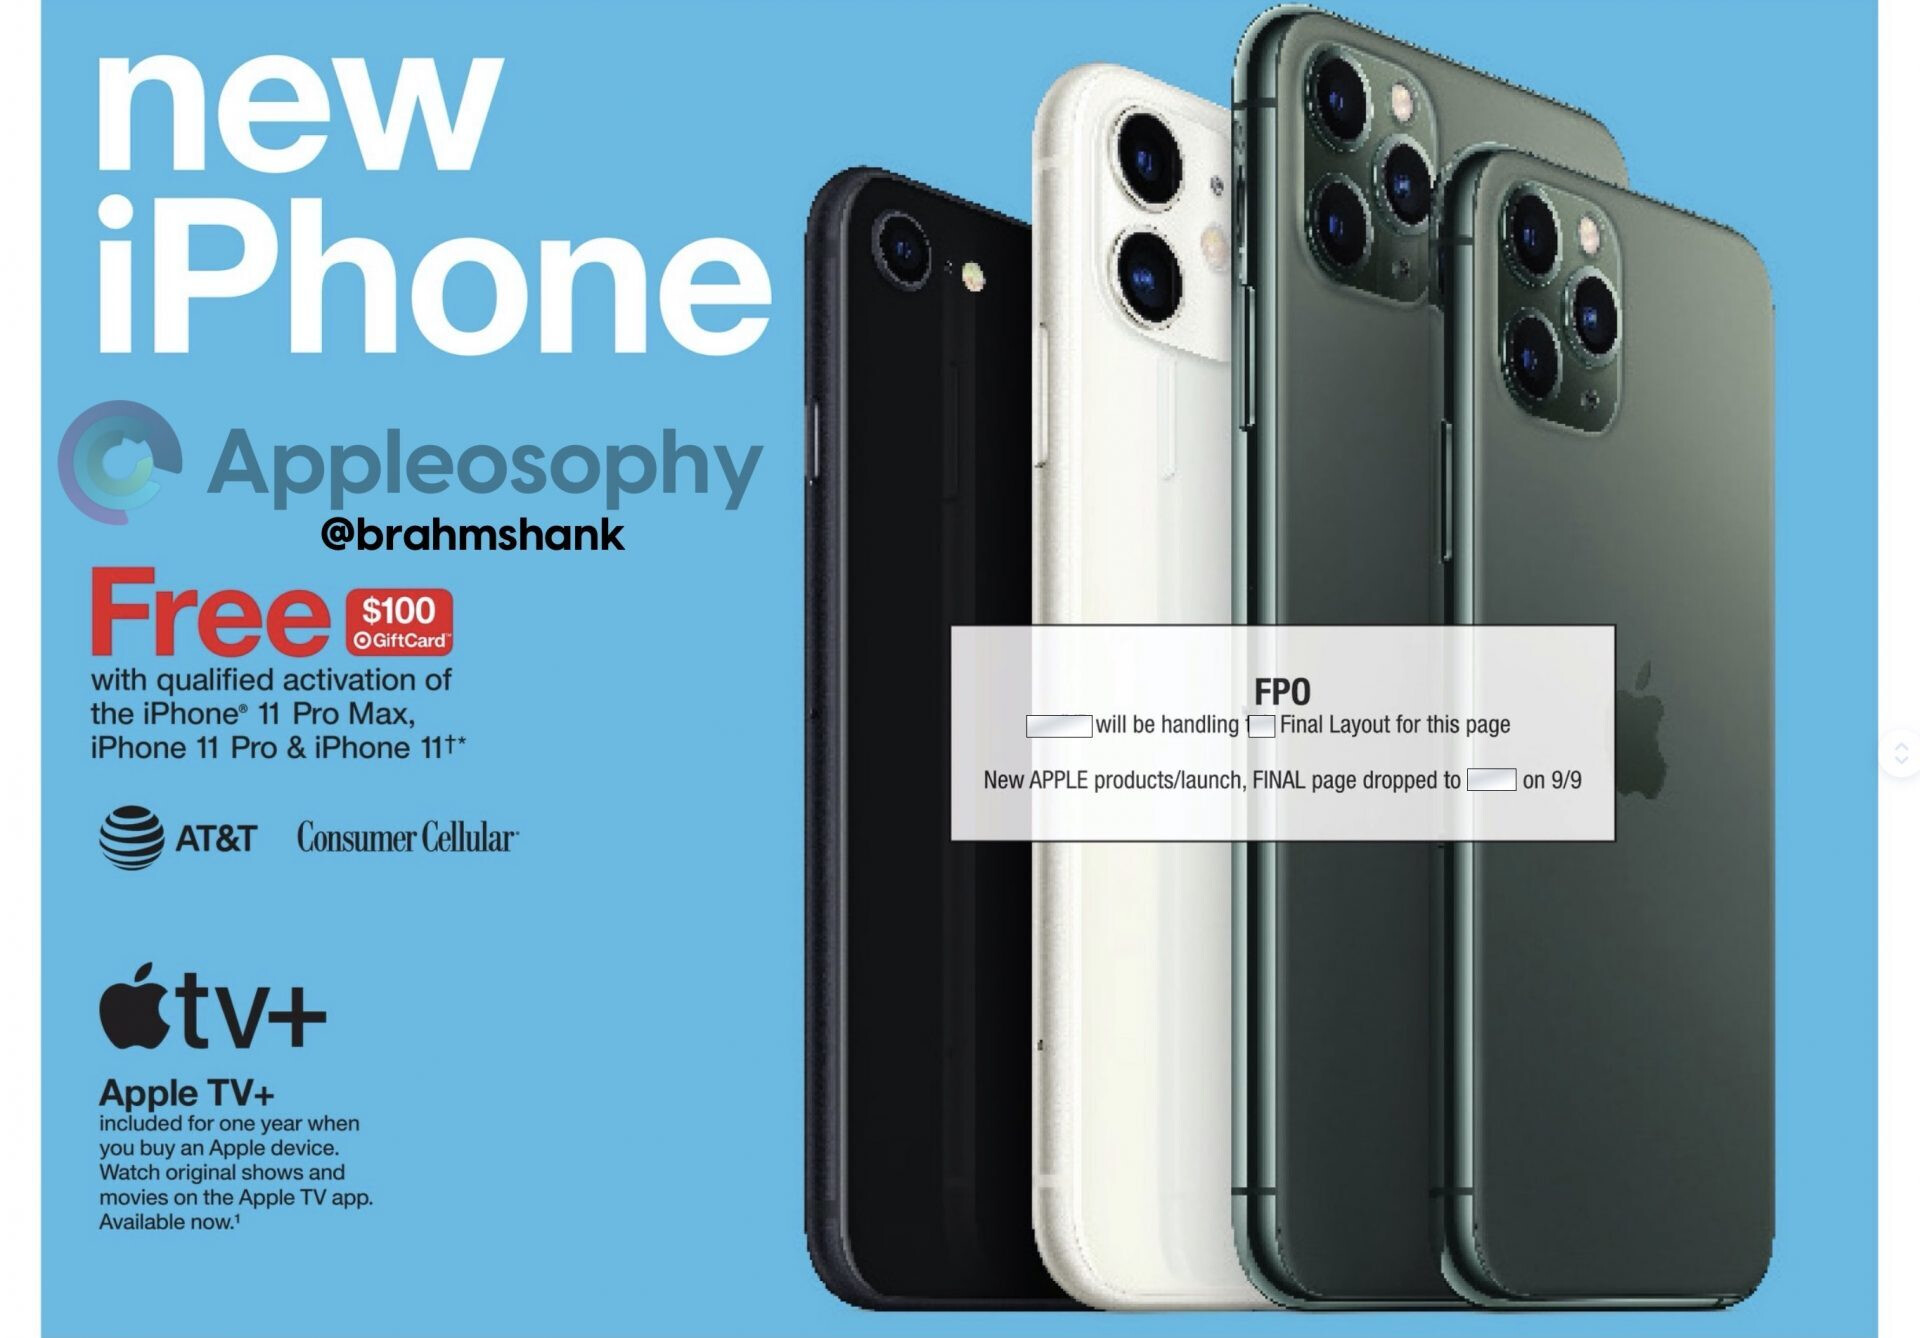 Target's allegedplaceholder draft for the iPhone 12 - Leaked Target ad and Apple's YouTube channel might hold clues to iPhone 12 launch plans